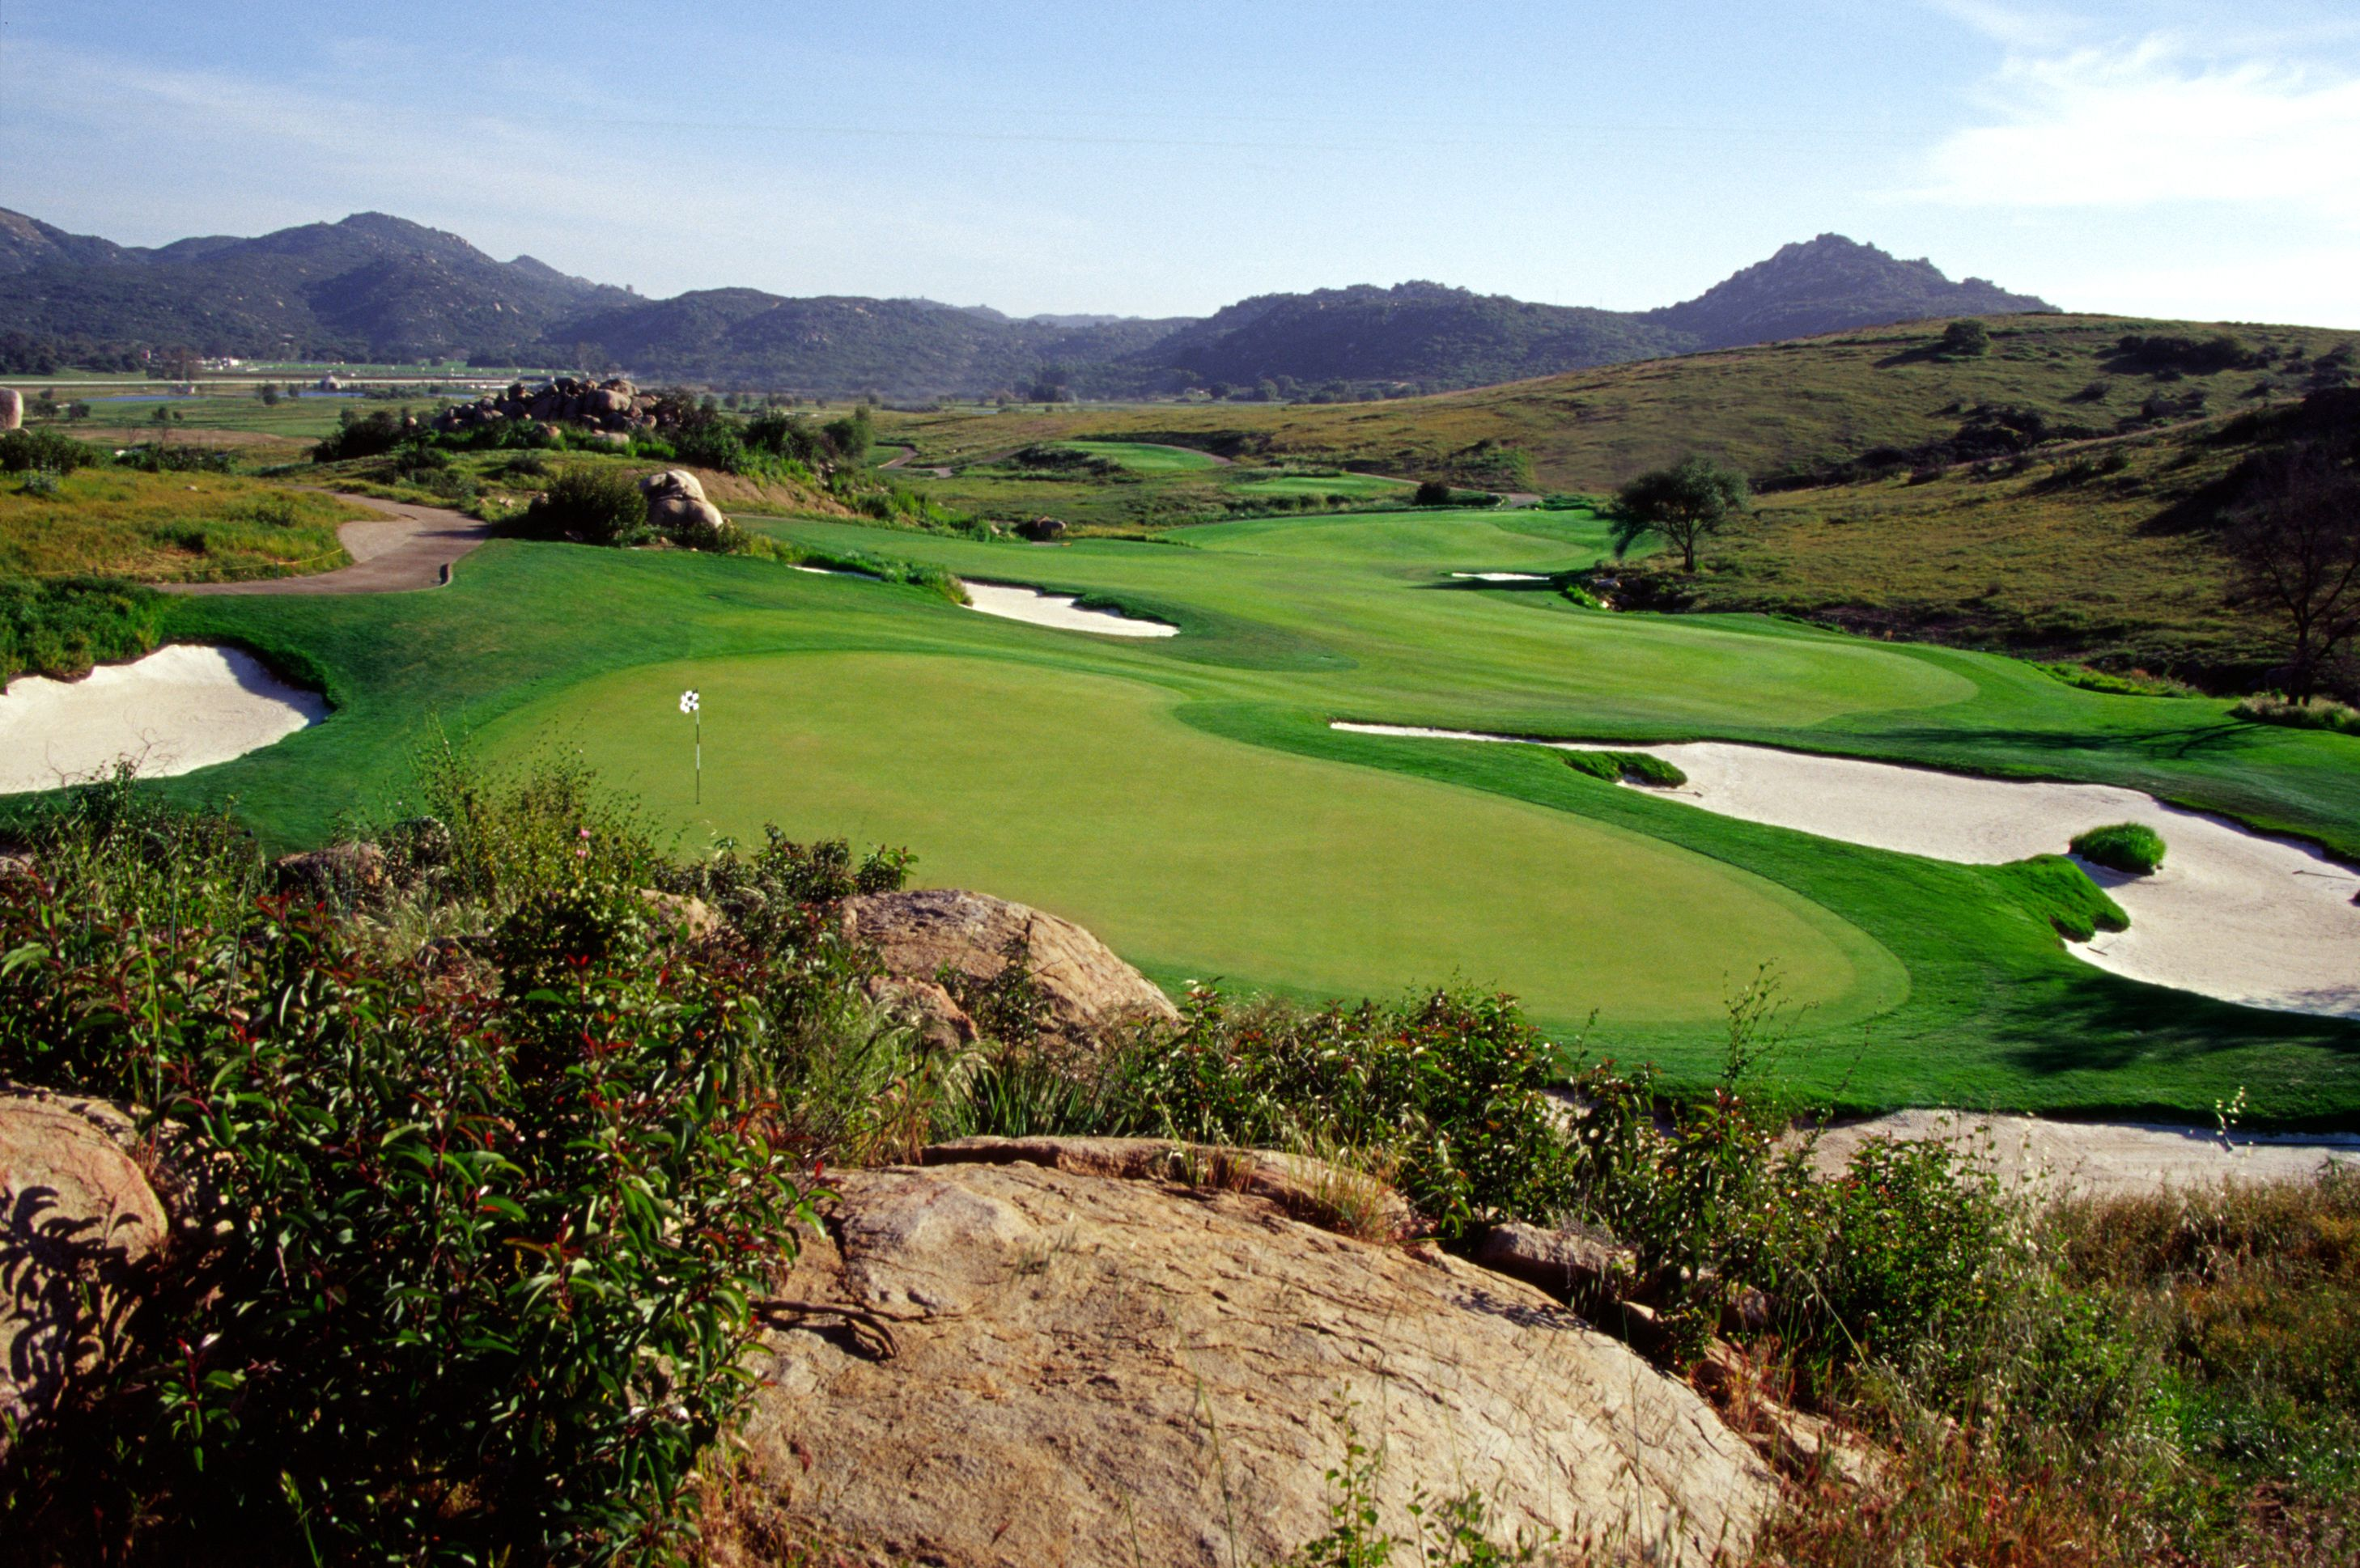 Challenge Your Golf Game At Barona Creek Golf Club Golf Courses Best Golf Courses San Diego Golf